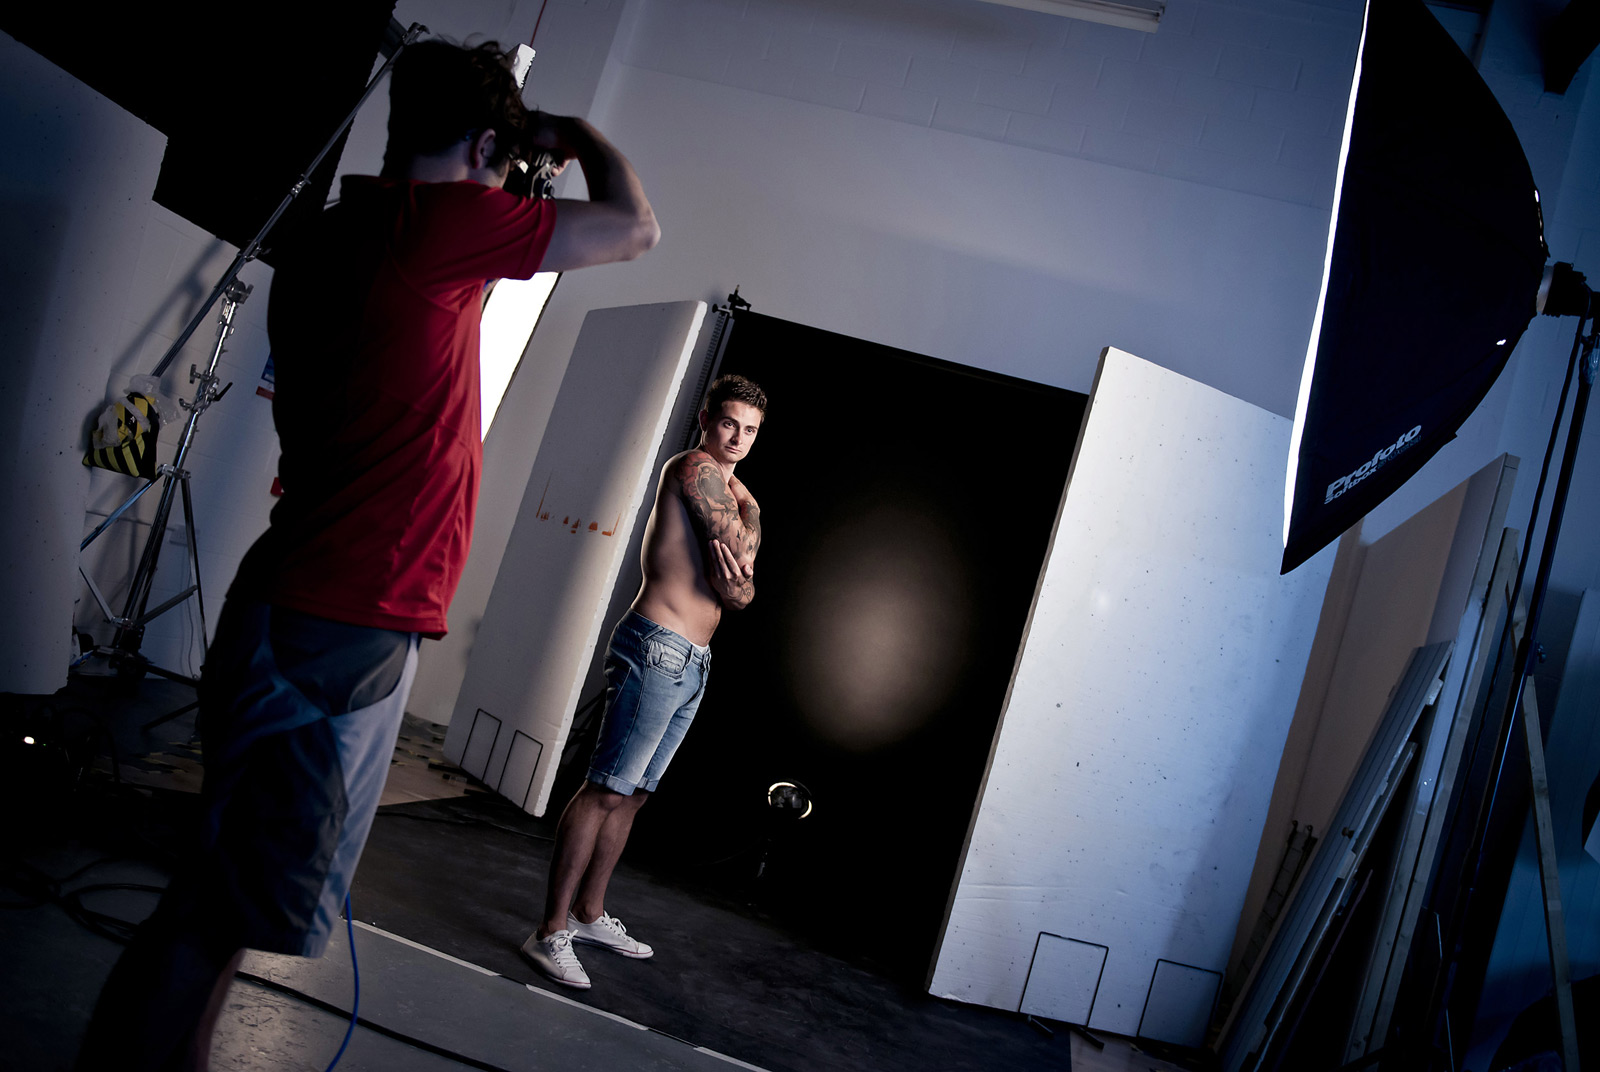 Behind the scenes showing our tattoo photoshoot setup